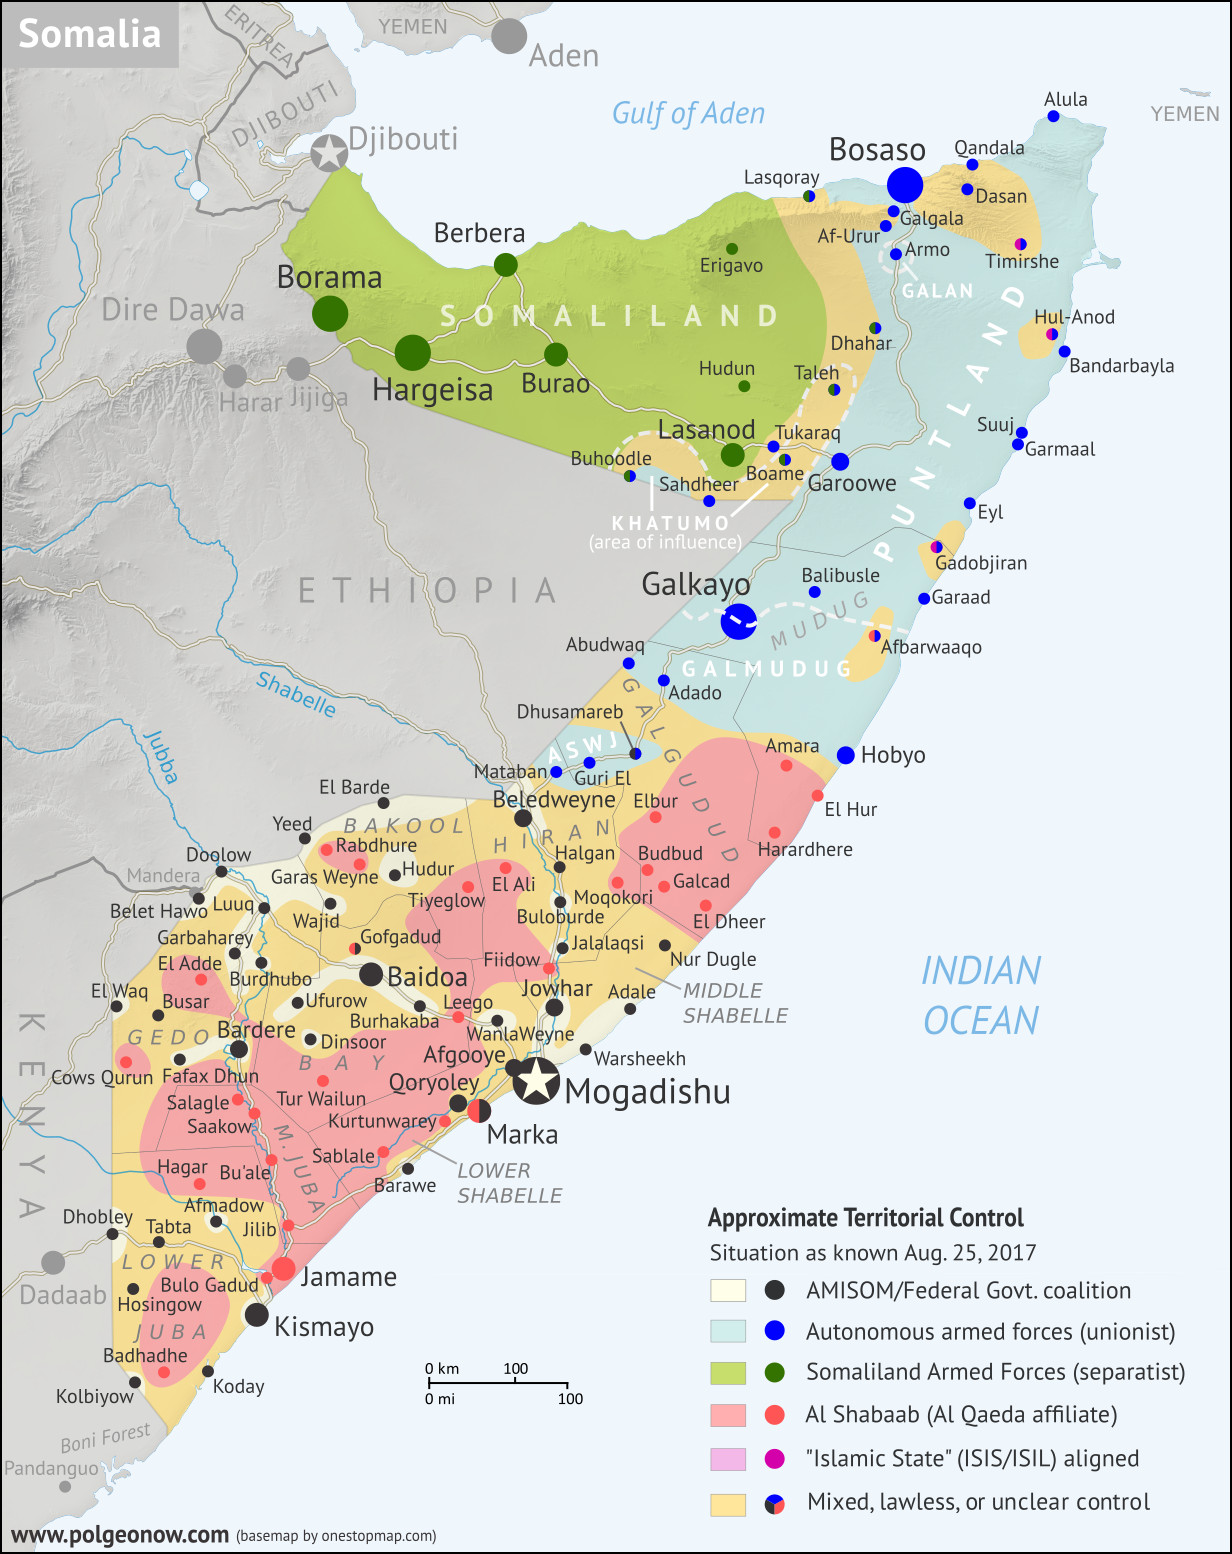 African Union Map.Us Conducts New Airstrike On Al Shabaab In Somalia As African Union